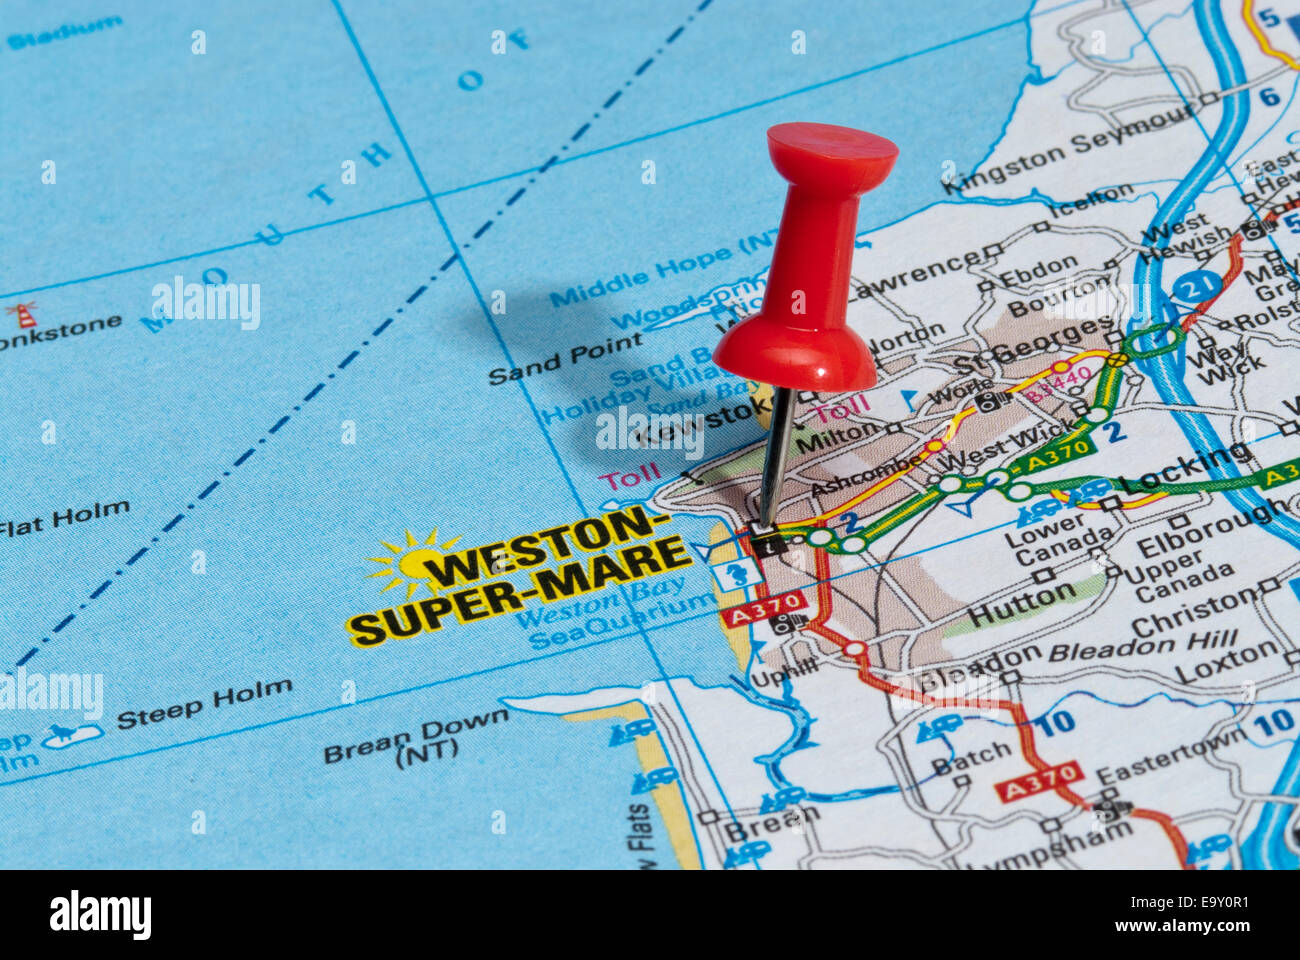 Weston Road Stock Photos Images Alamy Wiring Diagram Red Map Pin In Pointing To City Of Super Mare